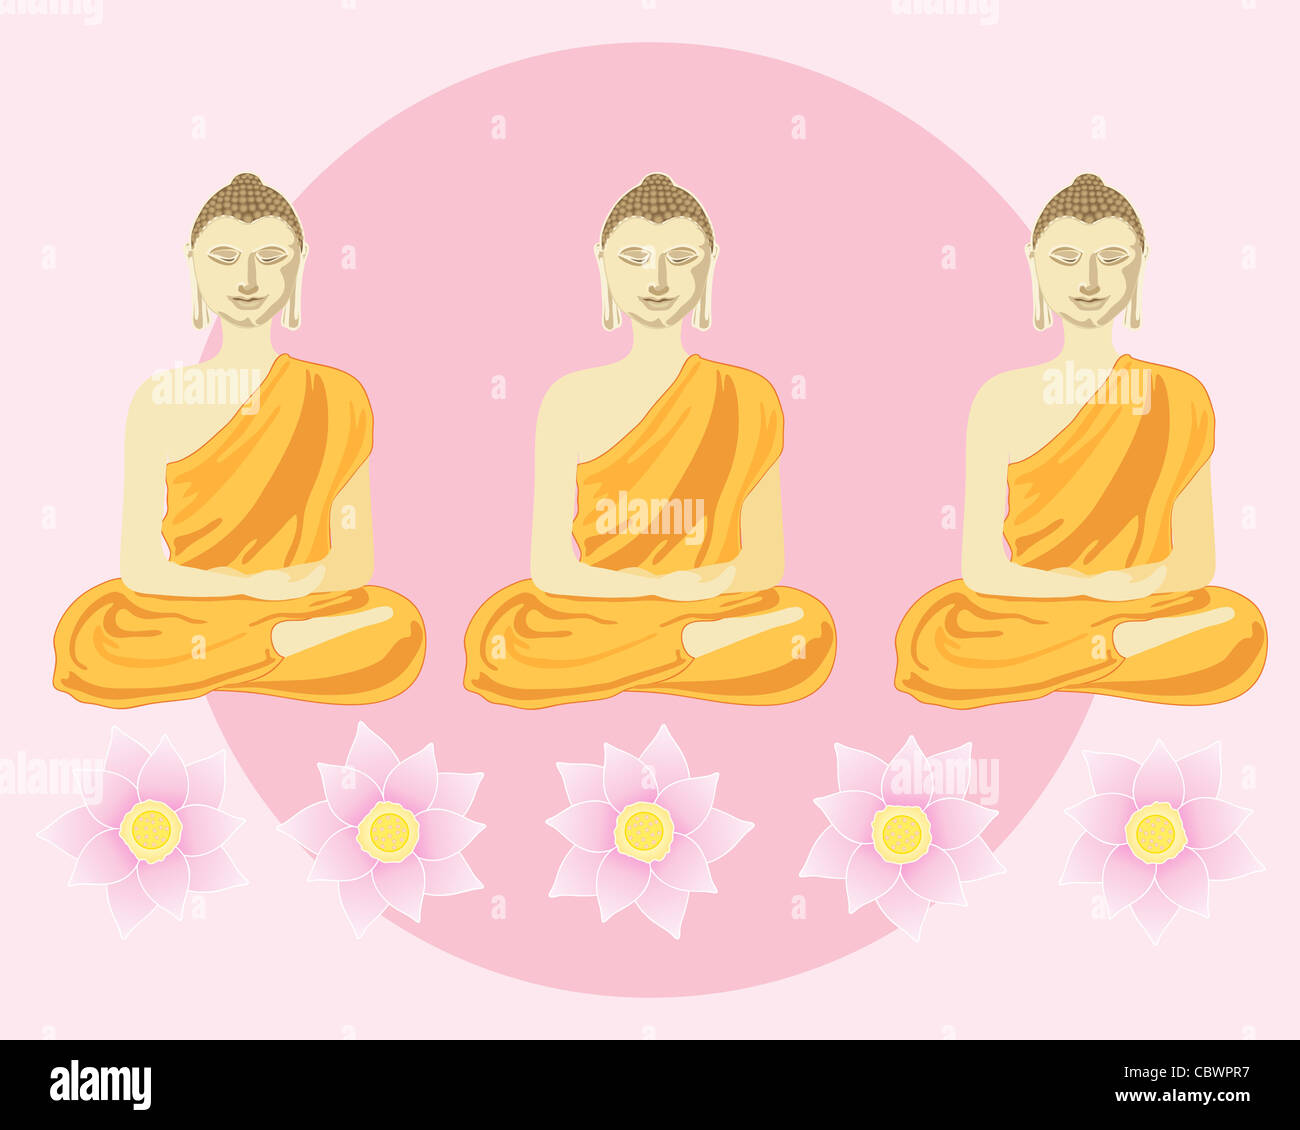 an illustration of a row of buddhas with lotus flowers in front of a big pink sun - Stock Image